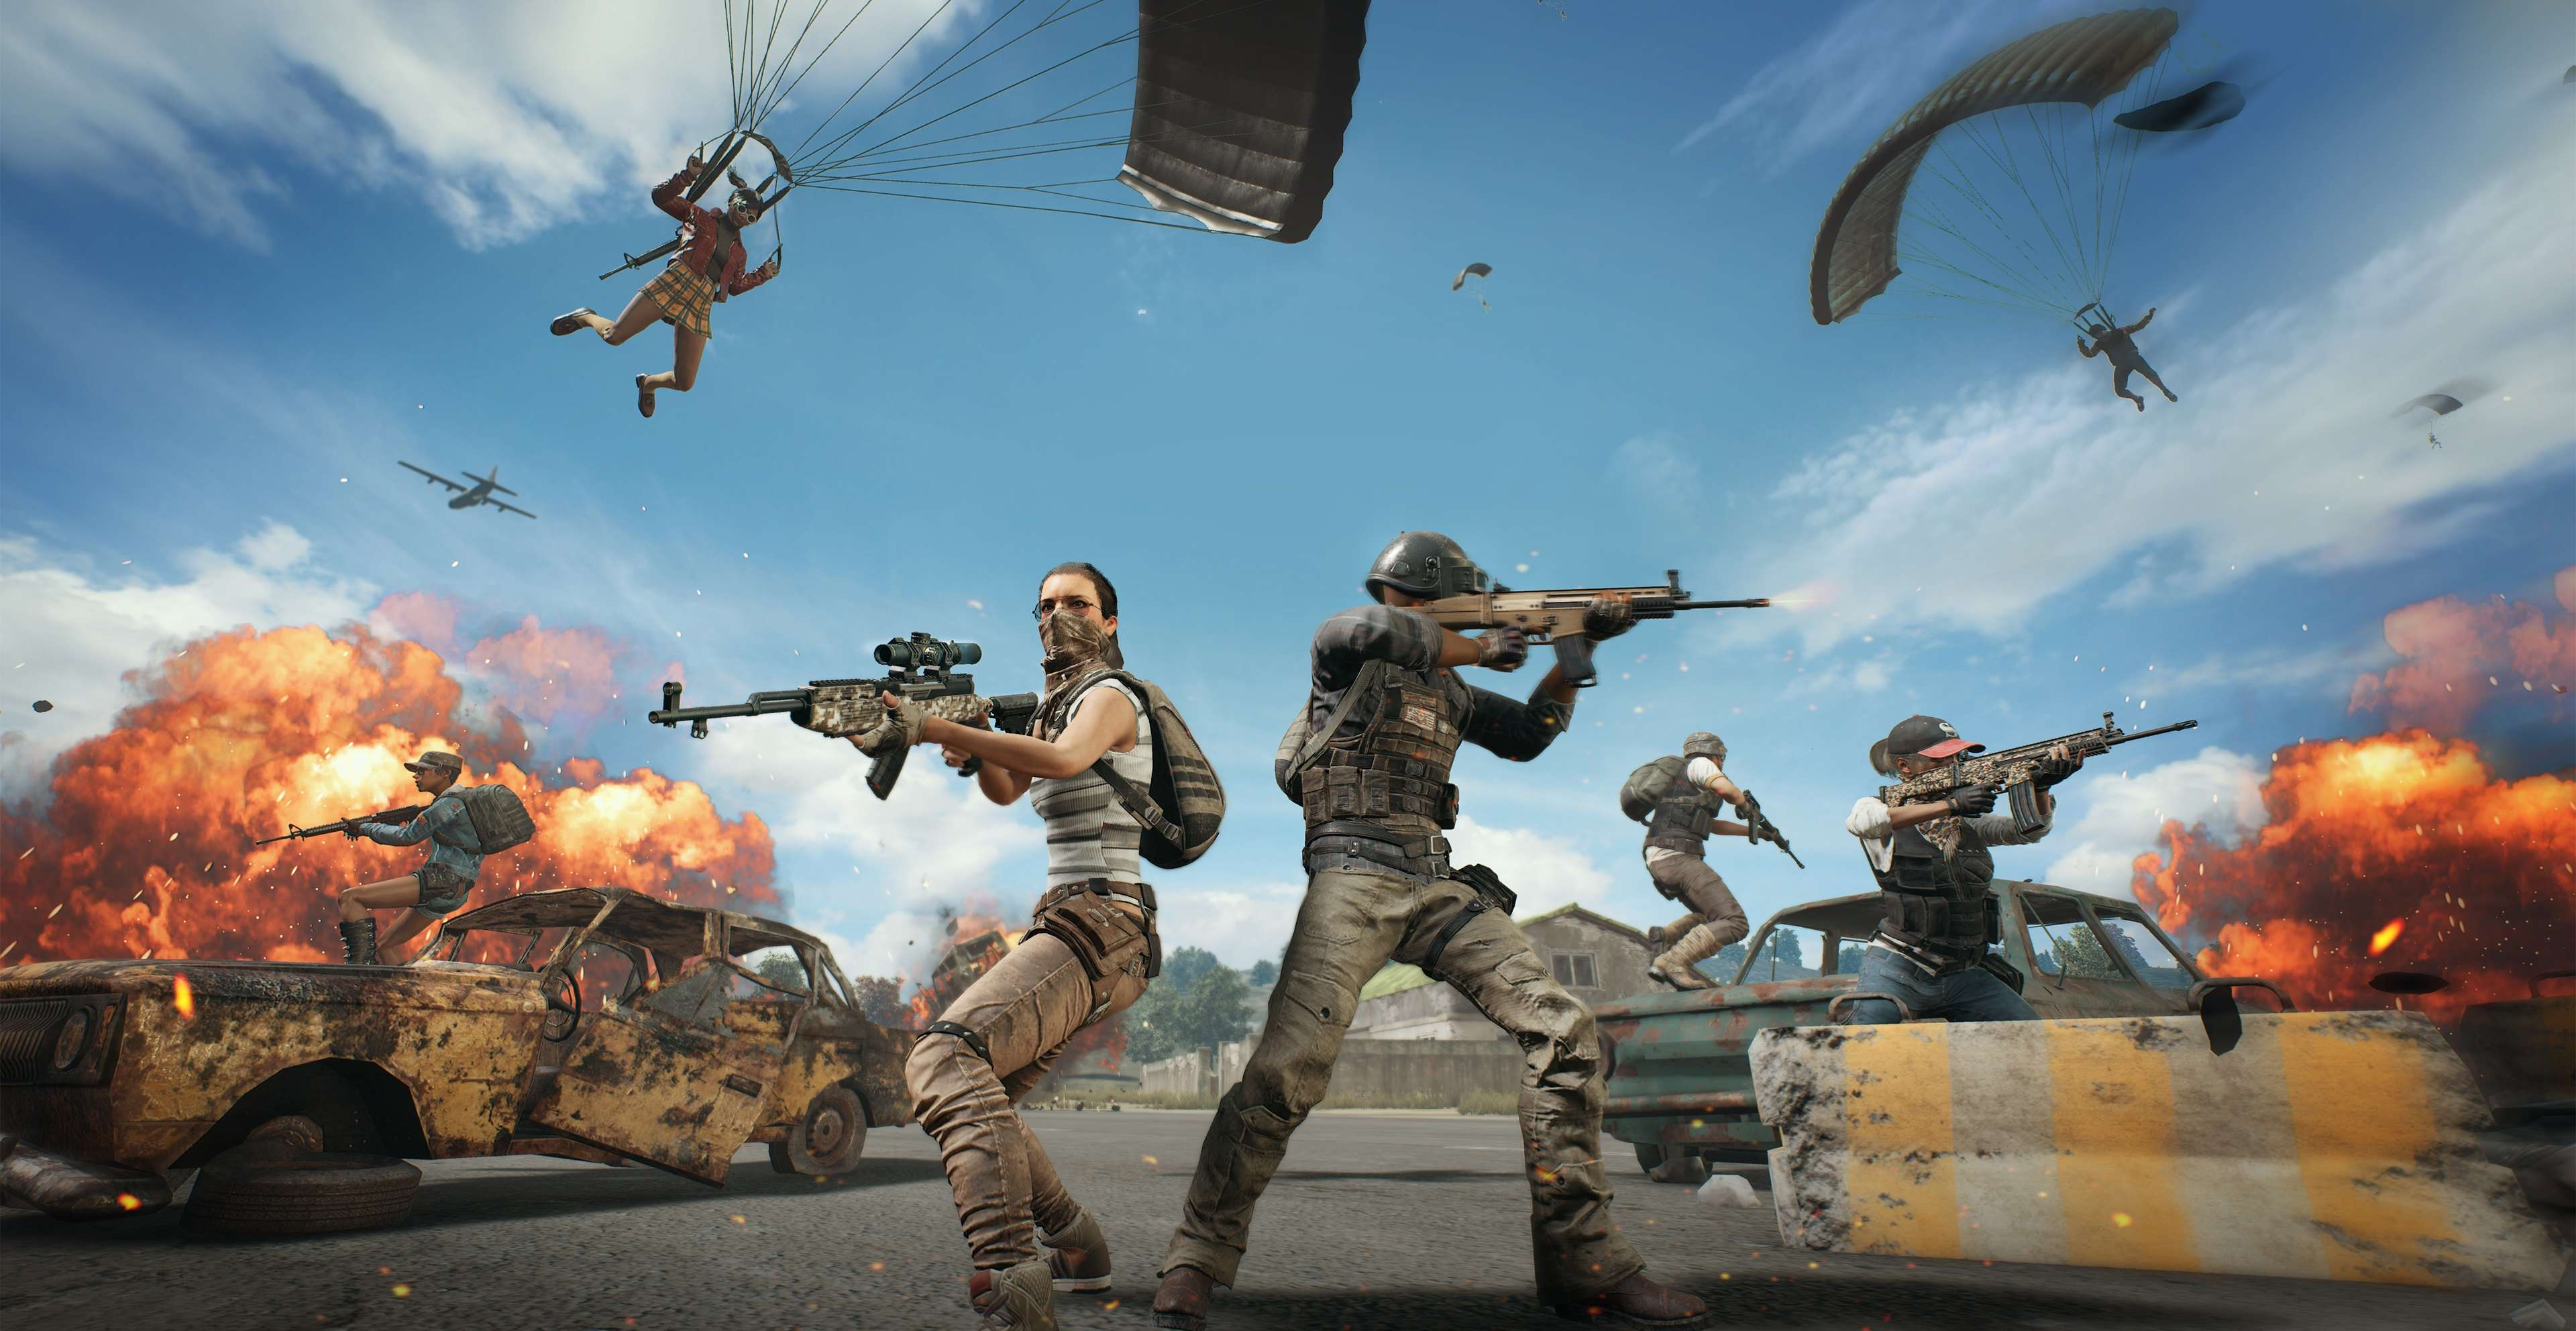 PUBG Streaming: PUBG gamers are making moolah by live